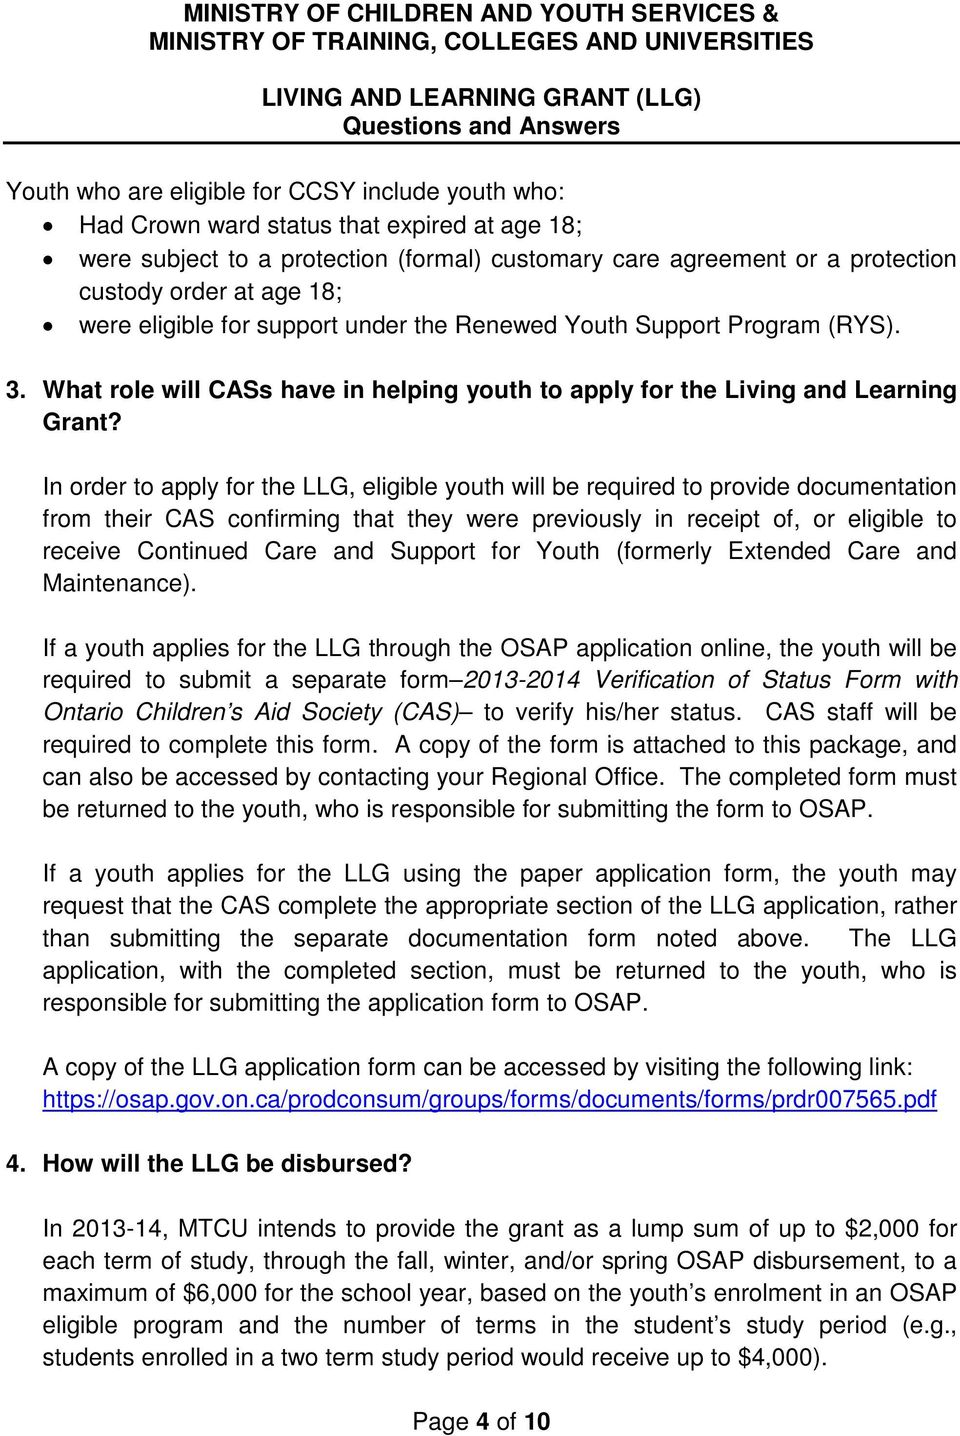 In order to apply for the LLG, eligible youth will be required to provide documentation from their CAS confirming that they were previously in receipt of, or eligible to receive Continued Care and